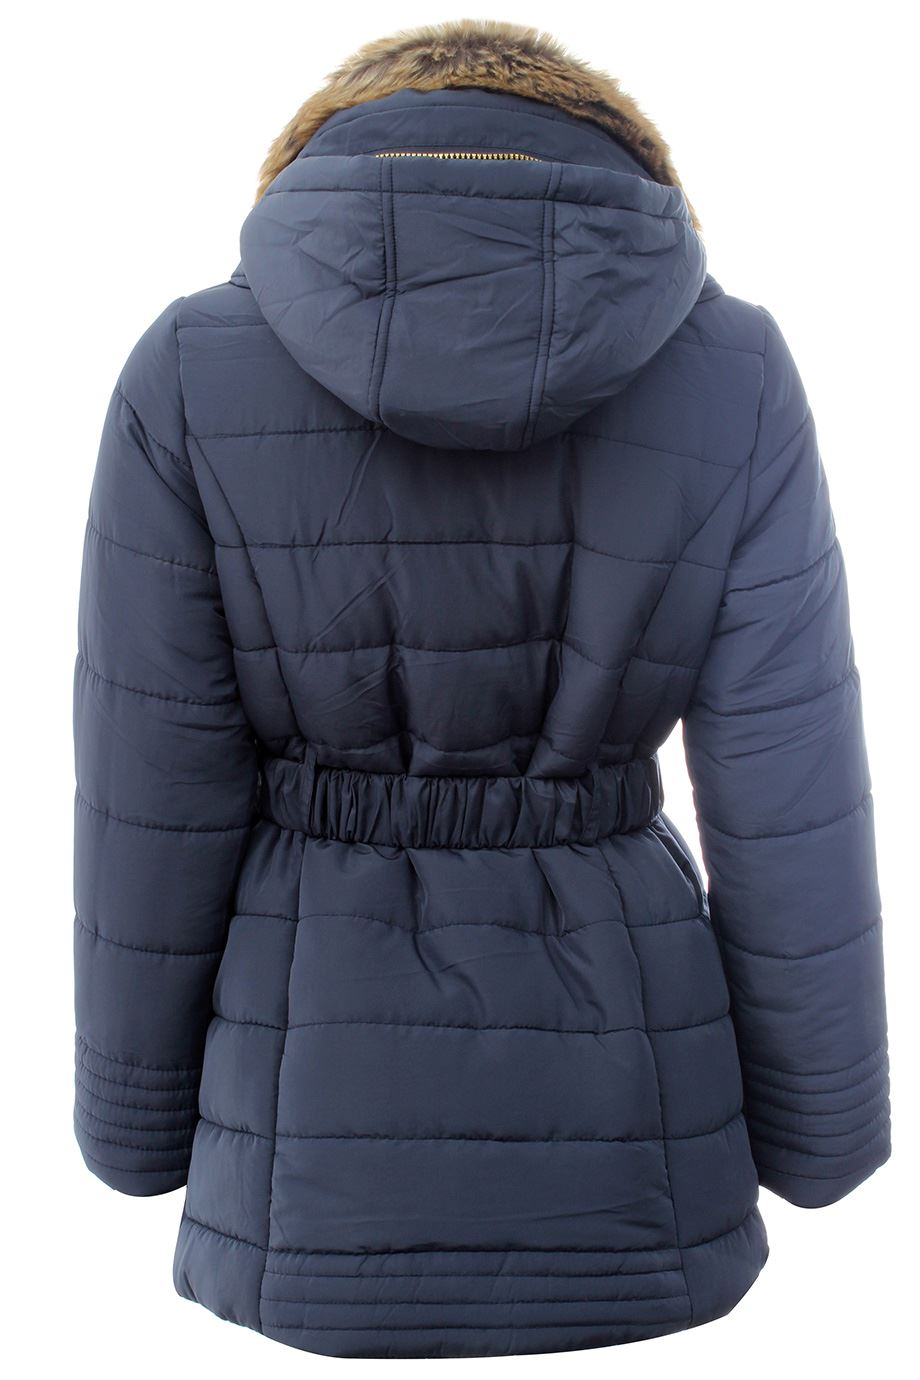 Details About New Ladies Plus Size Padded Quilted Belted Winter Coats Fur Neck Hooded Jackets